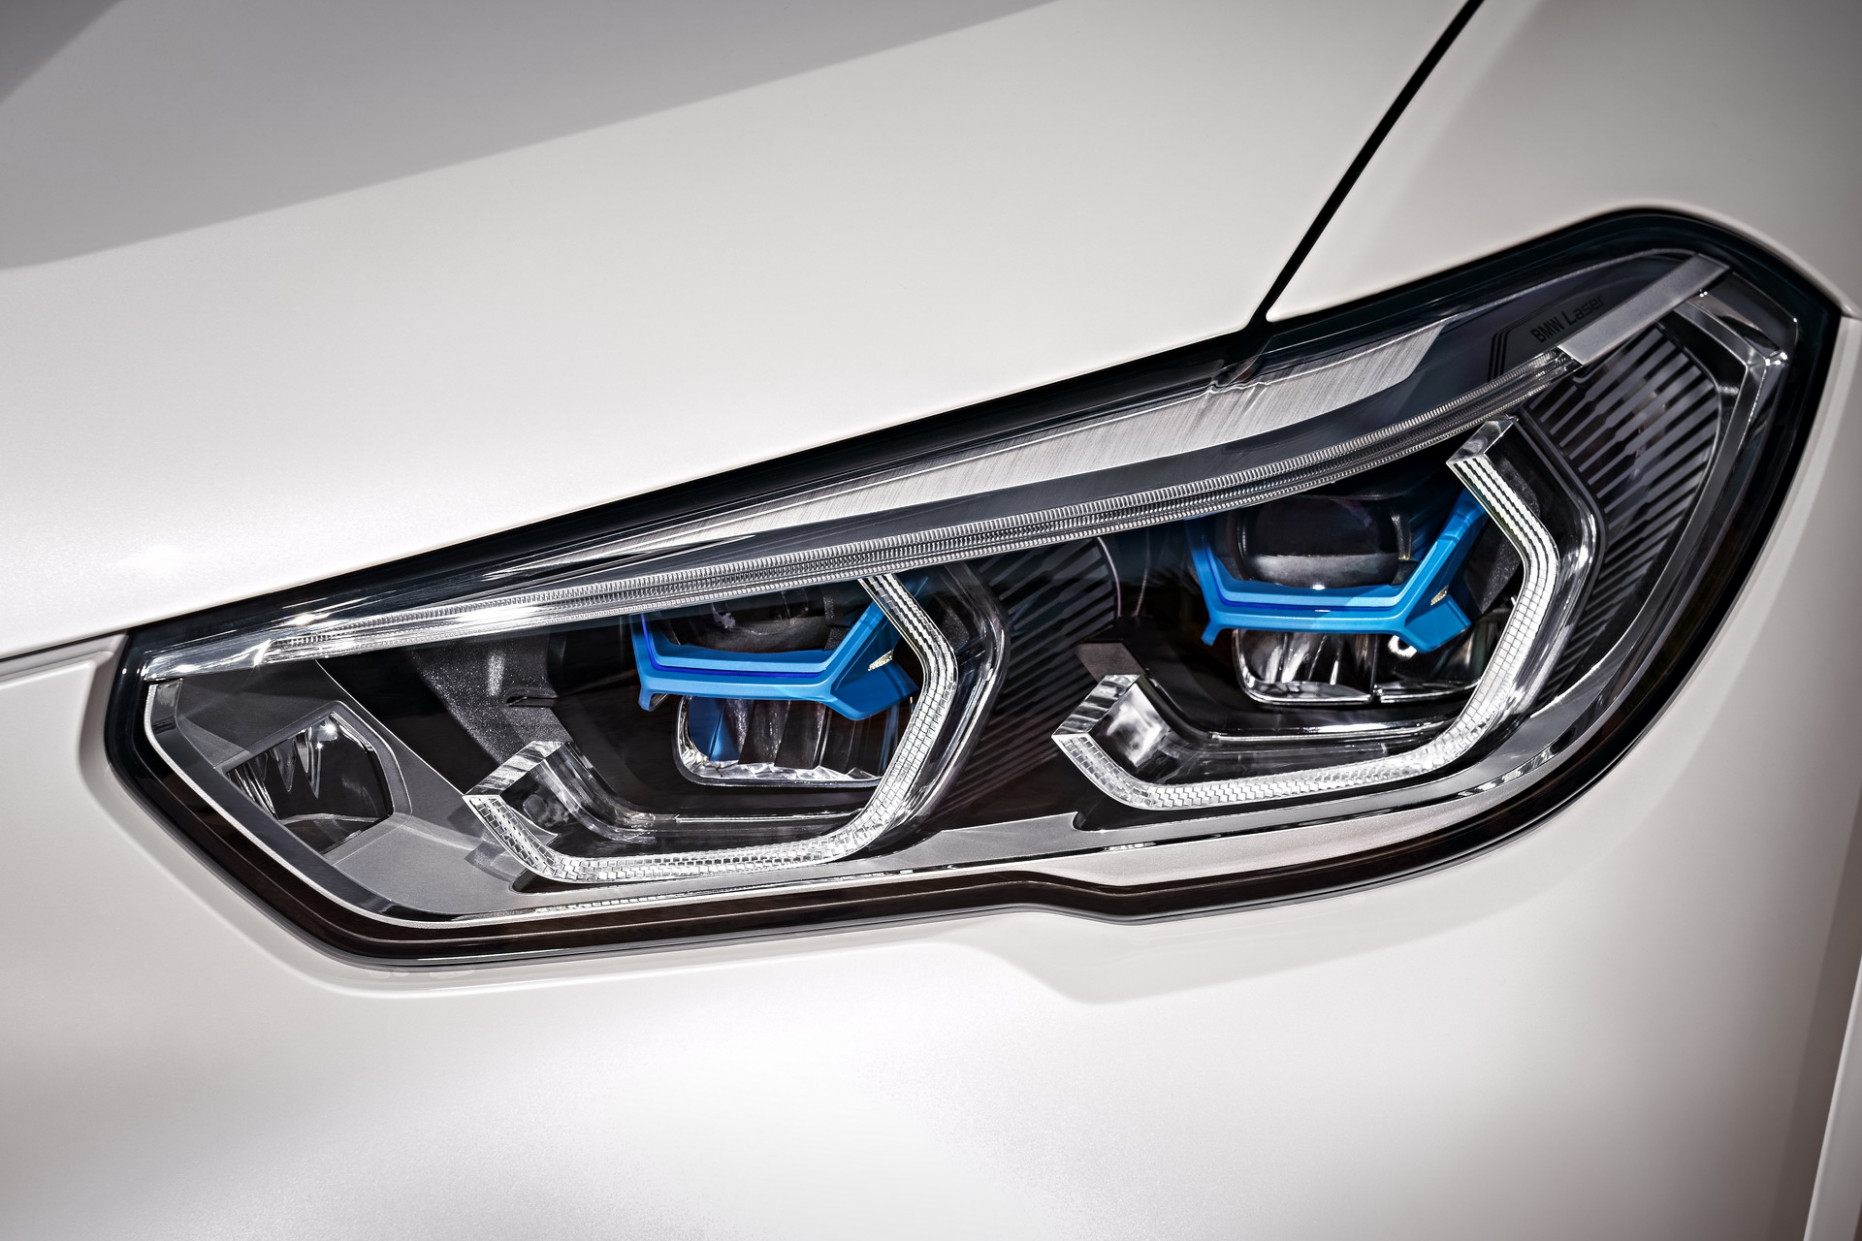 GUIDE: The Different BMW Headlights Technologies Explained - 2020 bmw laser headlights